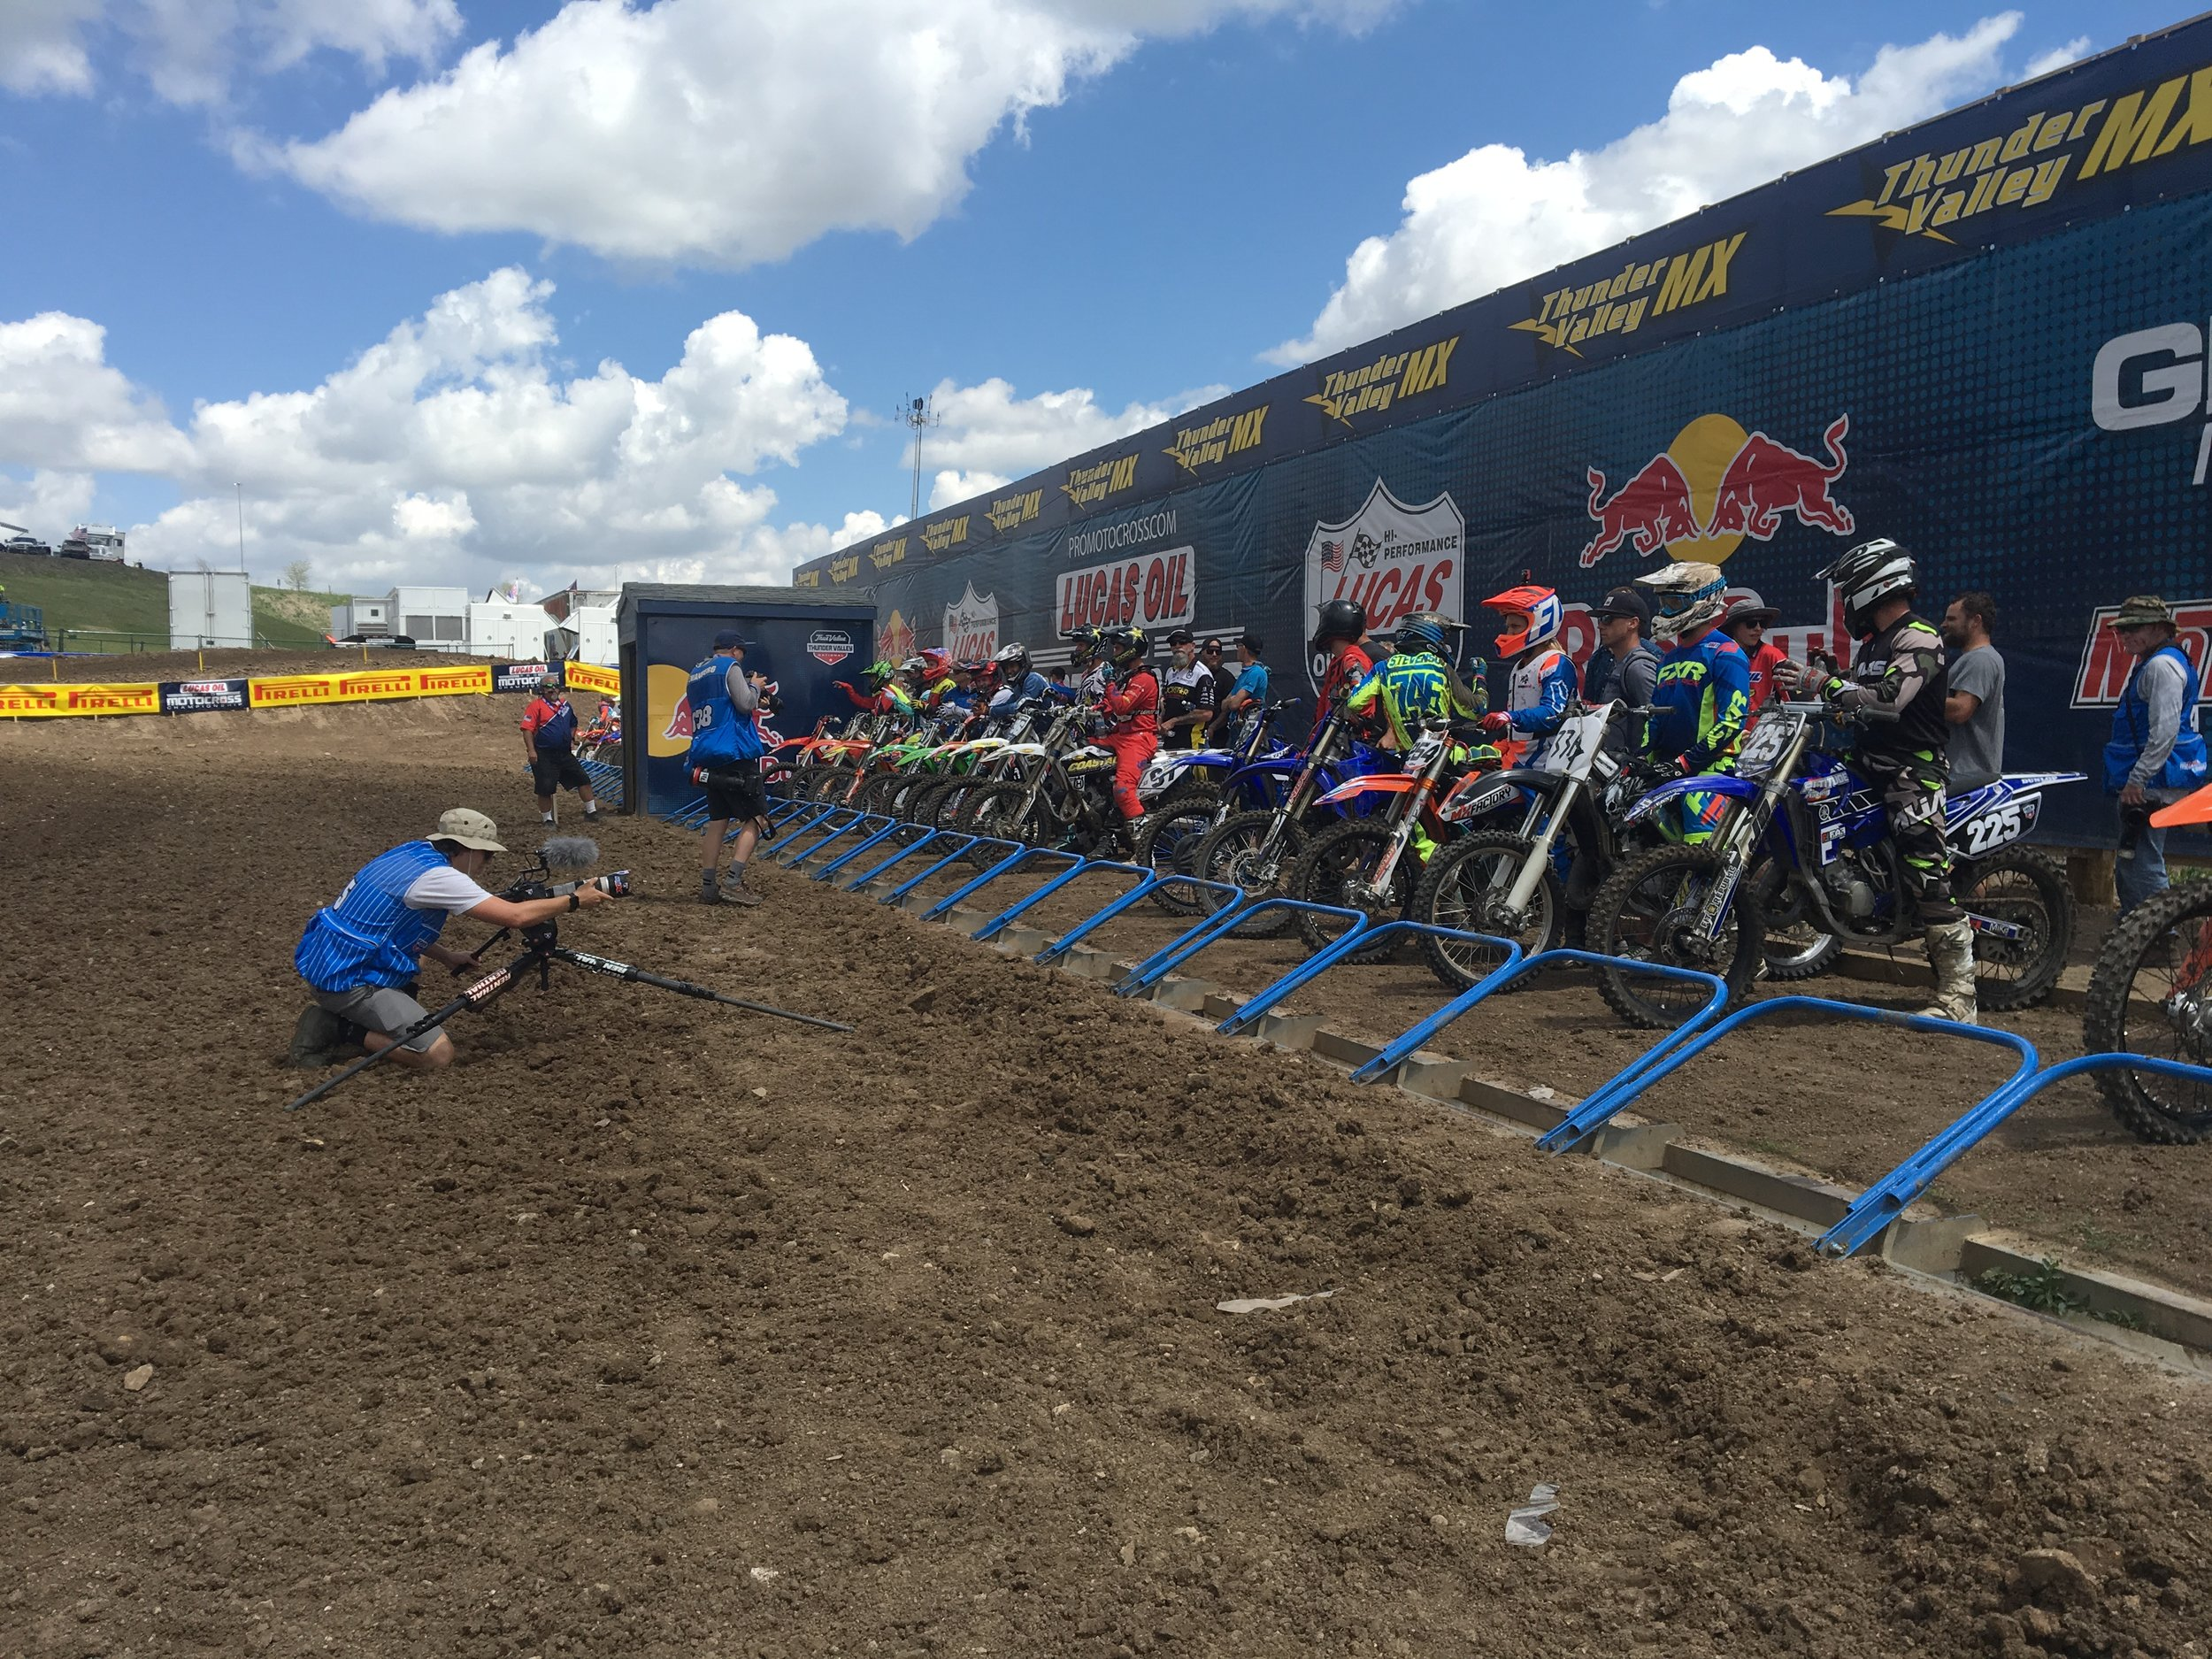 Starting gate for the 125 Dream Race!